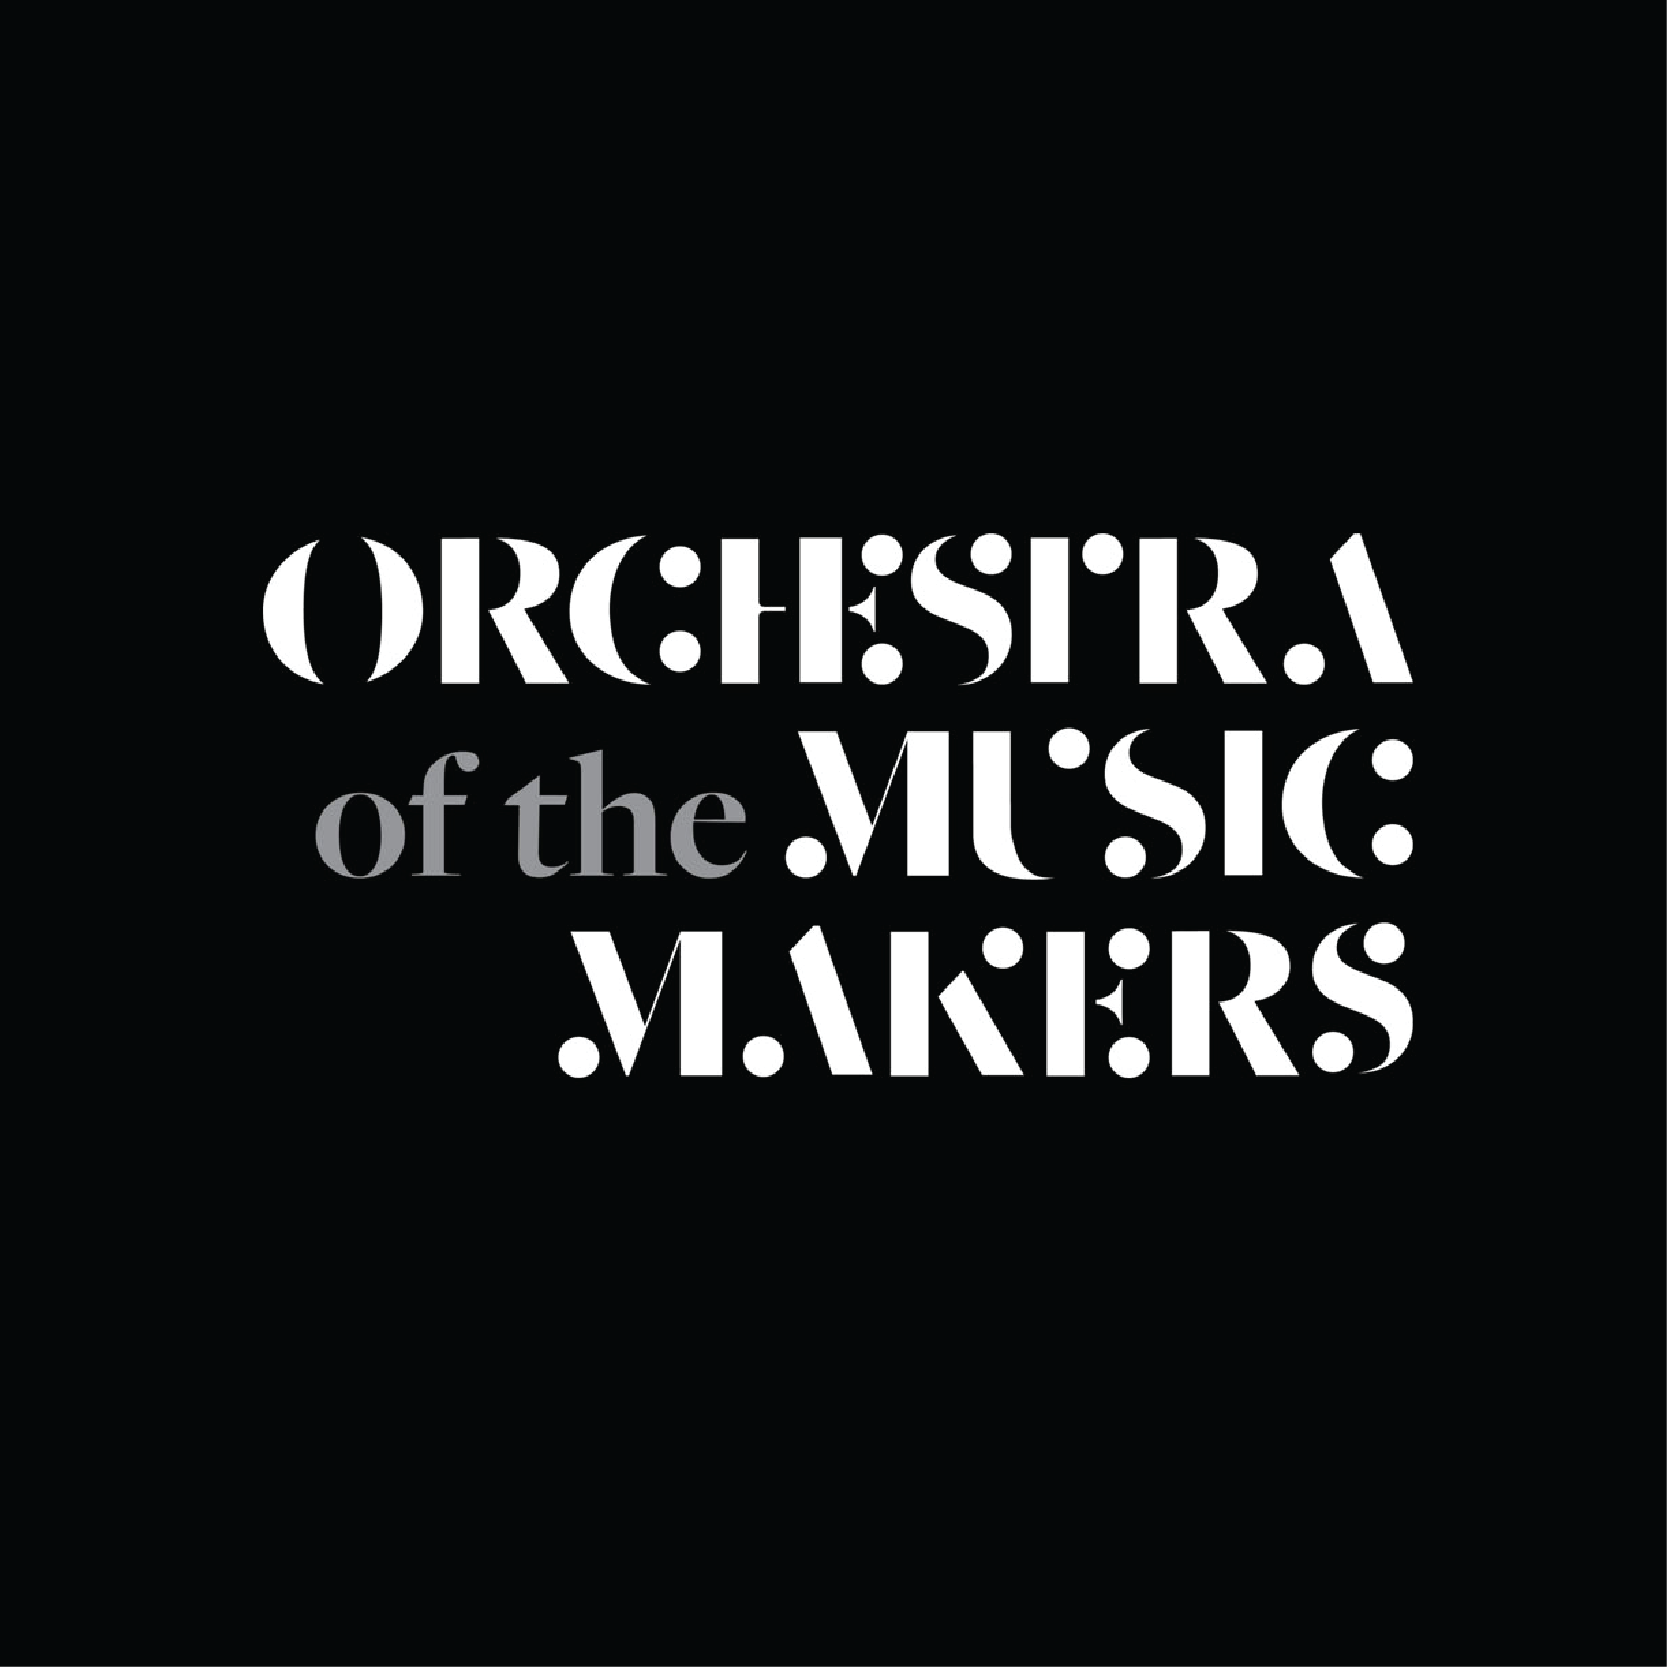 Orchestra of the Music Makers